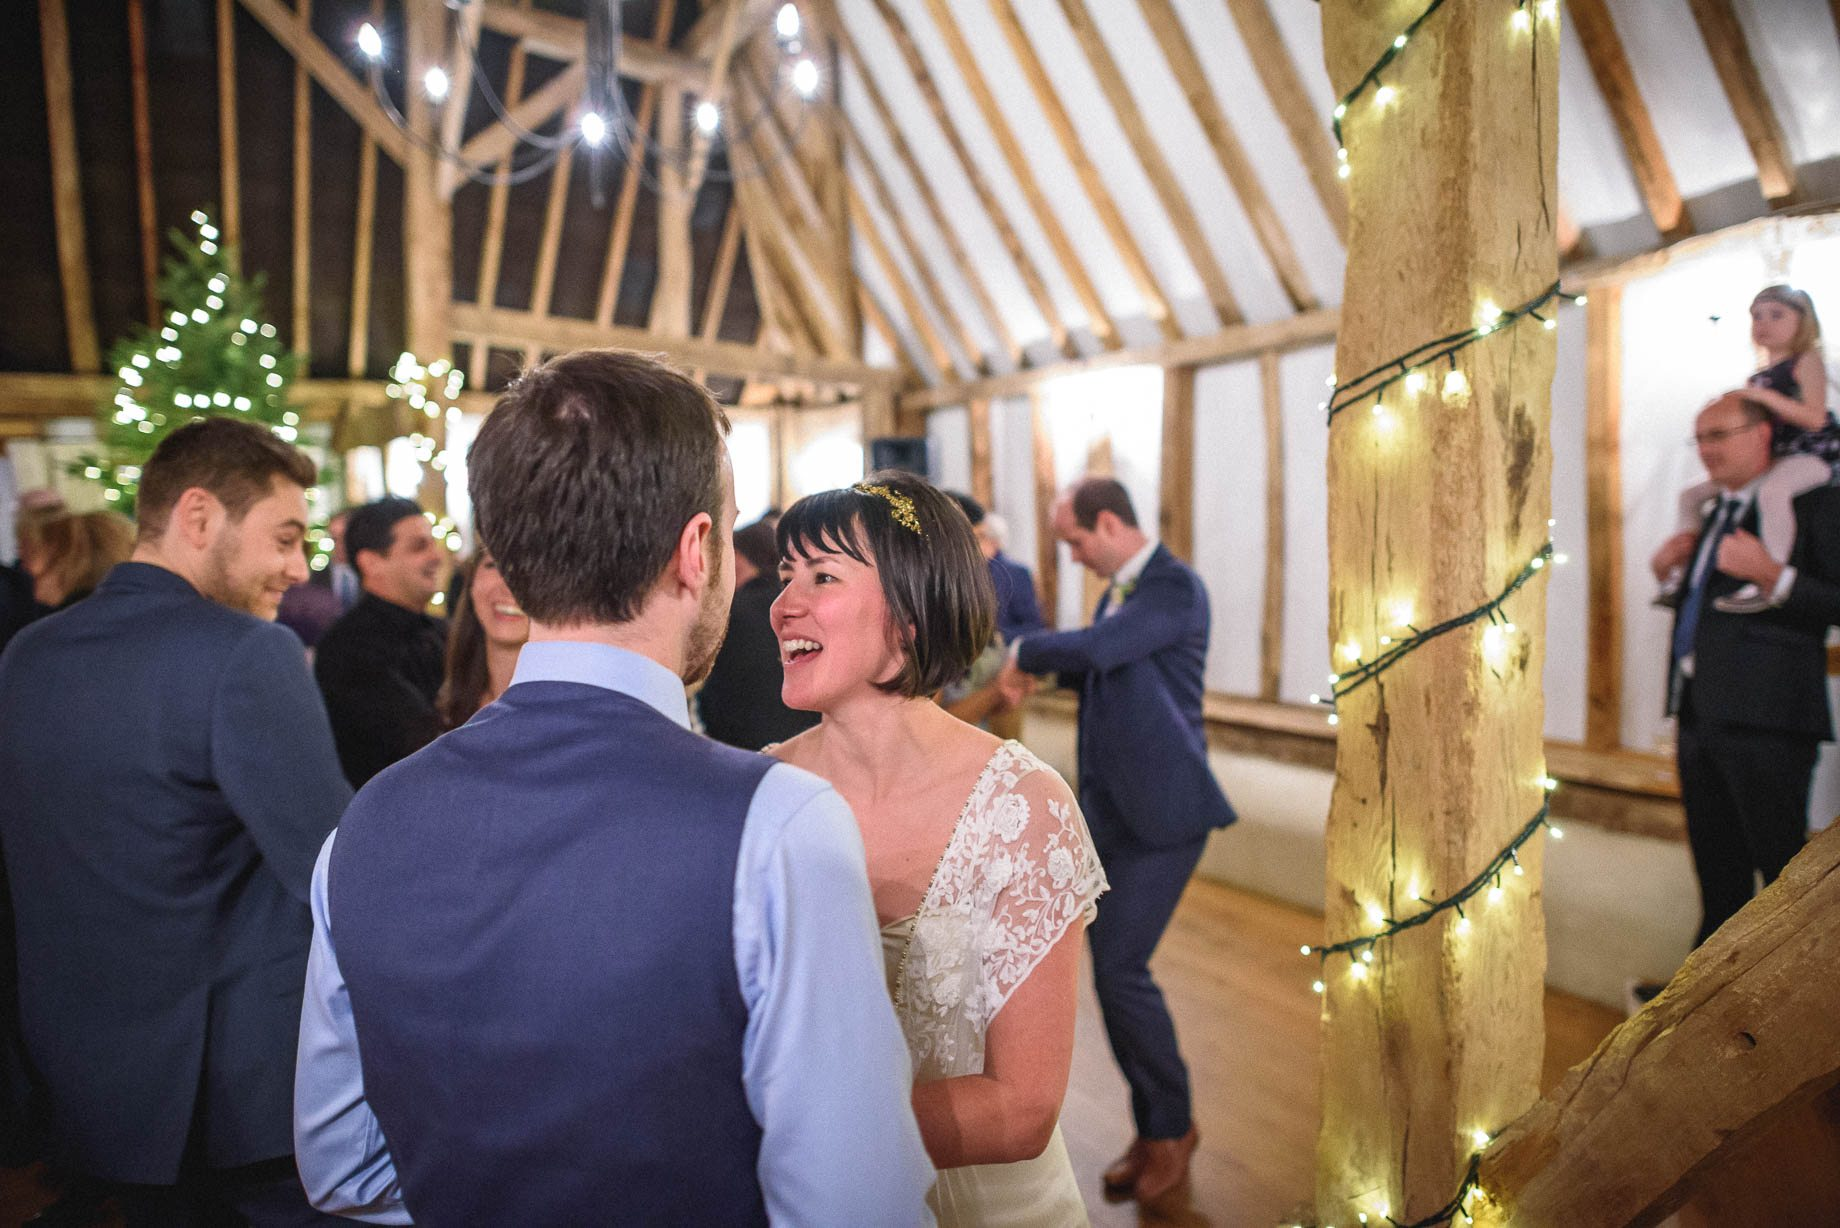 Clock Barn Wedding Photography - Eva and Ollie (167 of 170)